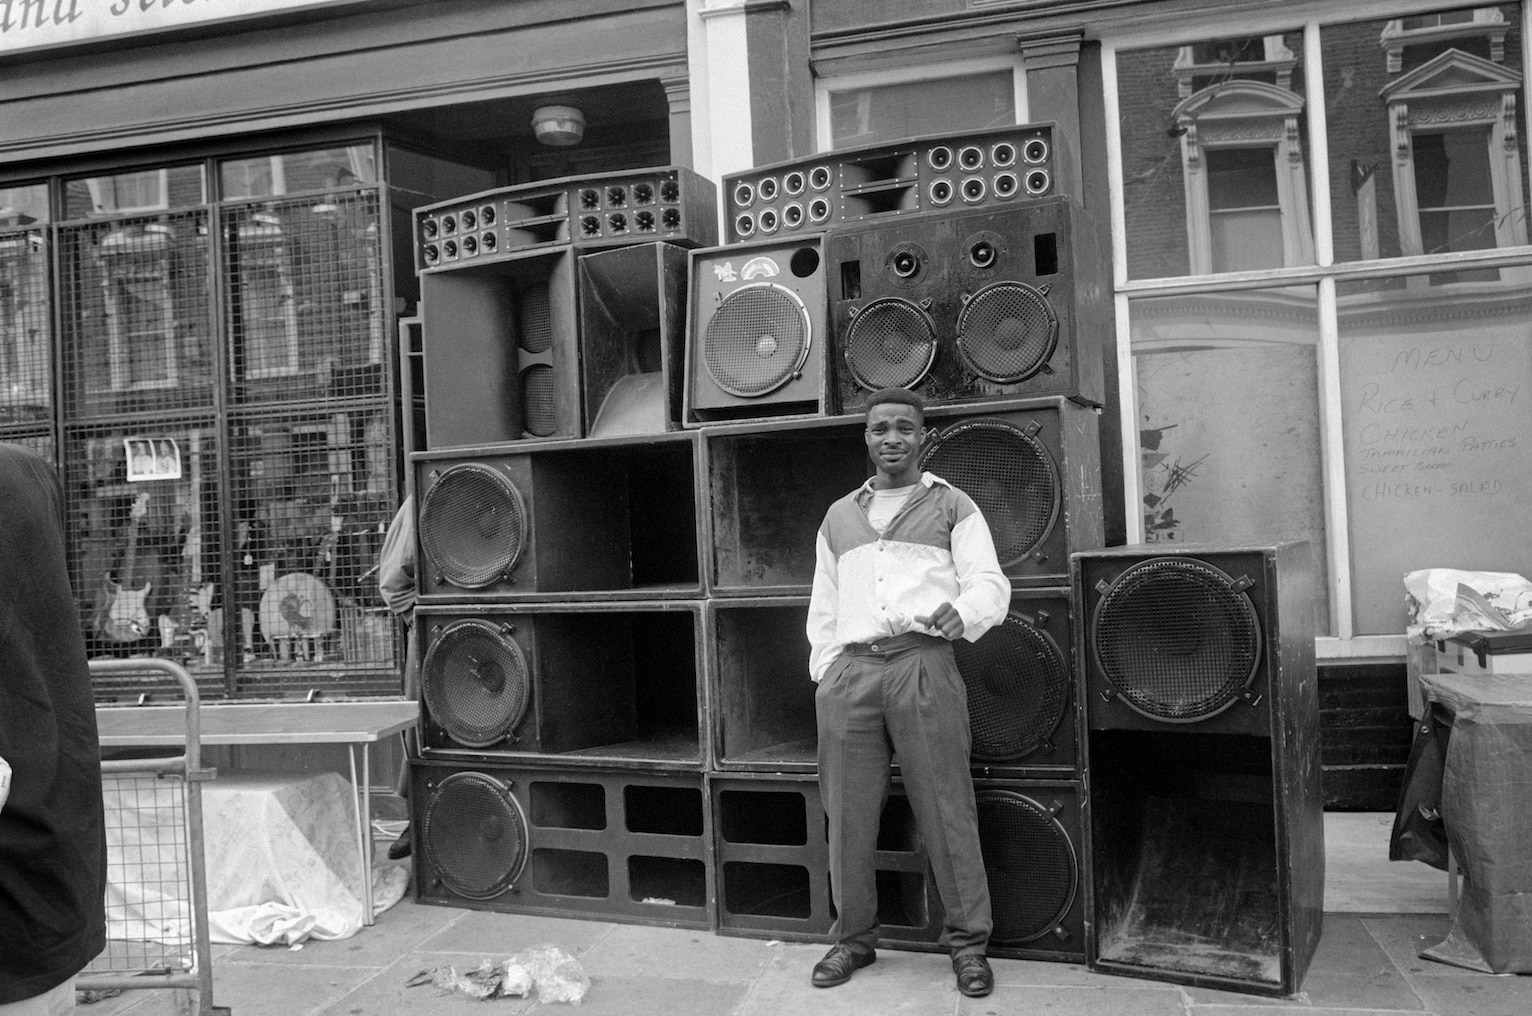 Notting Hill Carnival, All Saints Road, 21 August 1994. Notting Hill Carnival, All Saints Road, 21 August 1994.